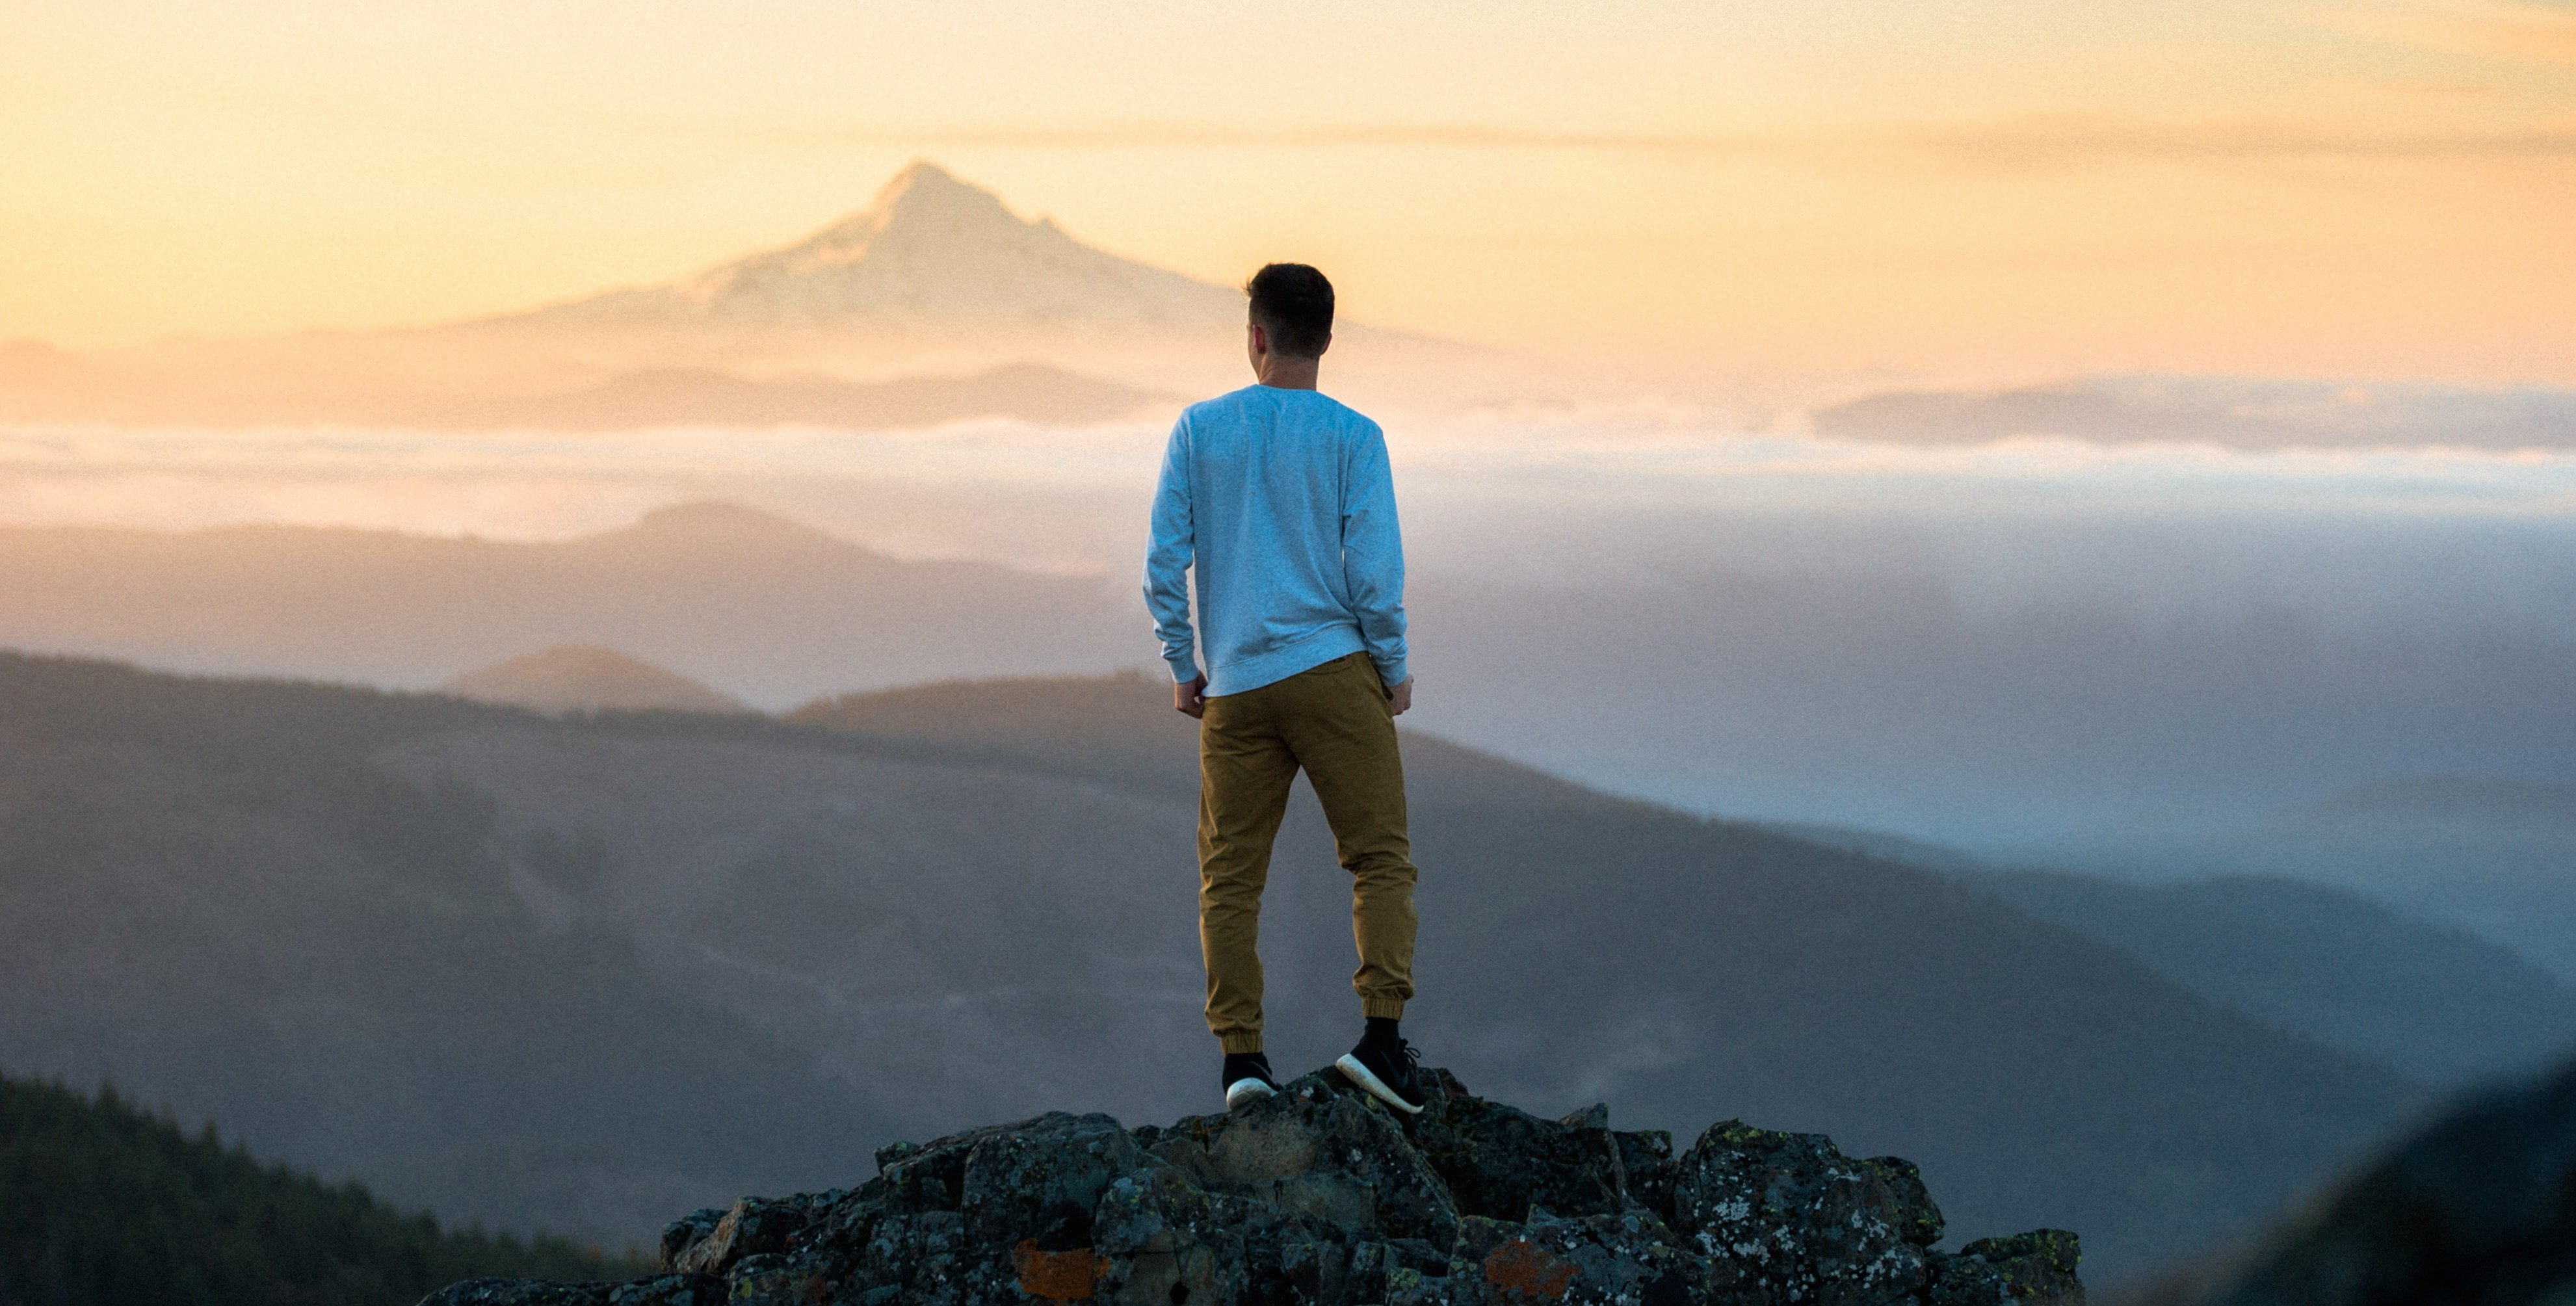 Young man standing on a mountain top looking out at the view